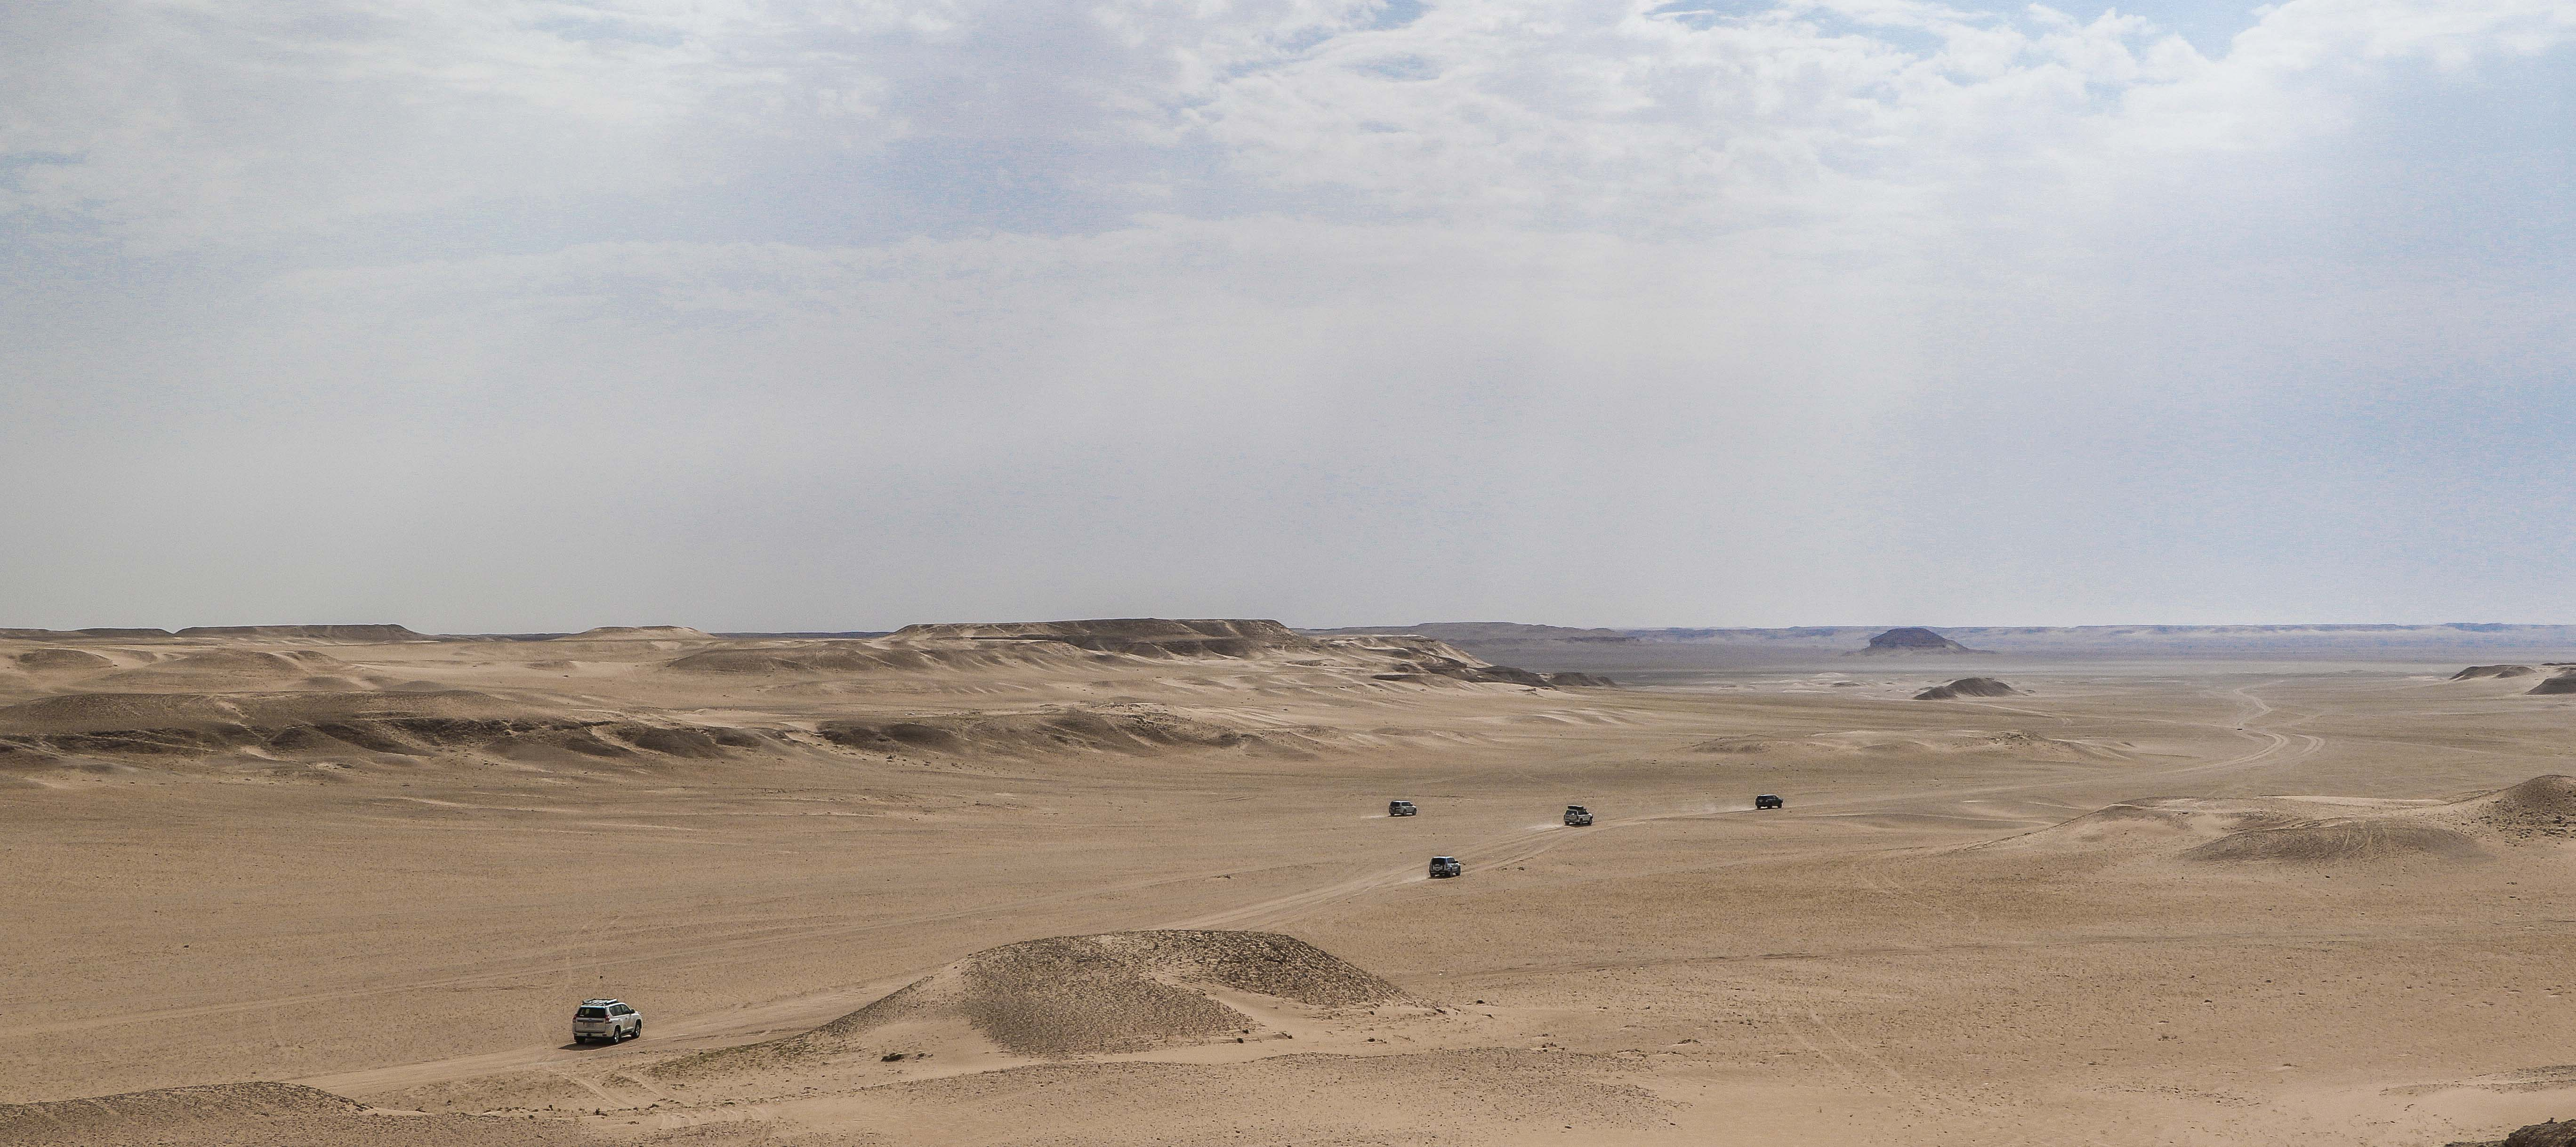 Typical landscape of Al-Ahsa Region with its wonderful shades of limestone (photo: F. Egal)